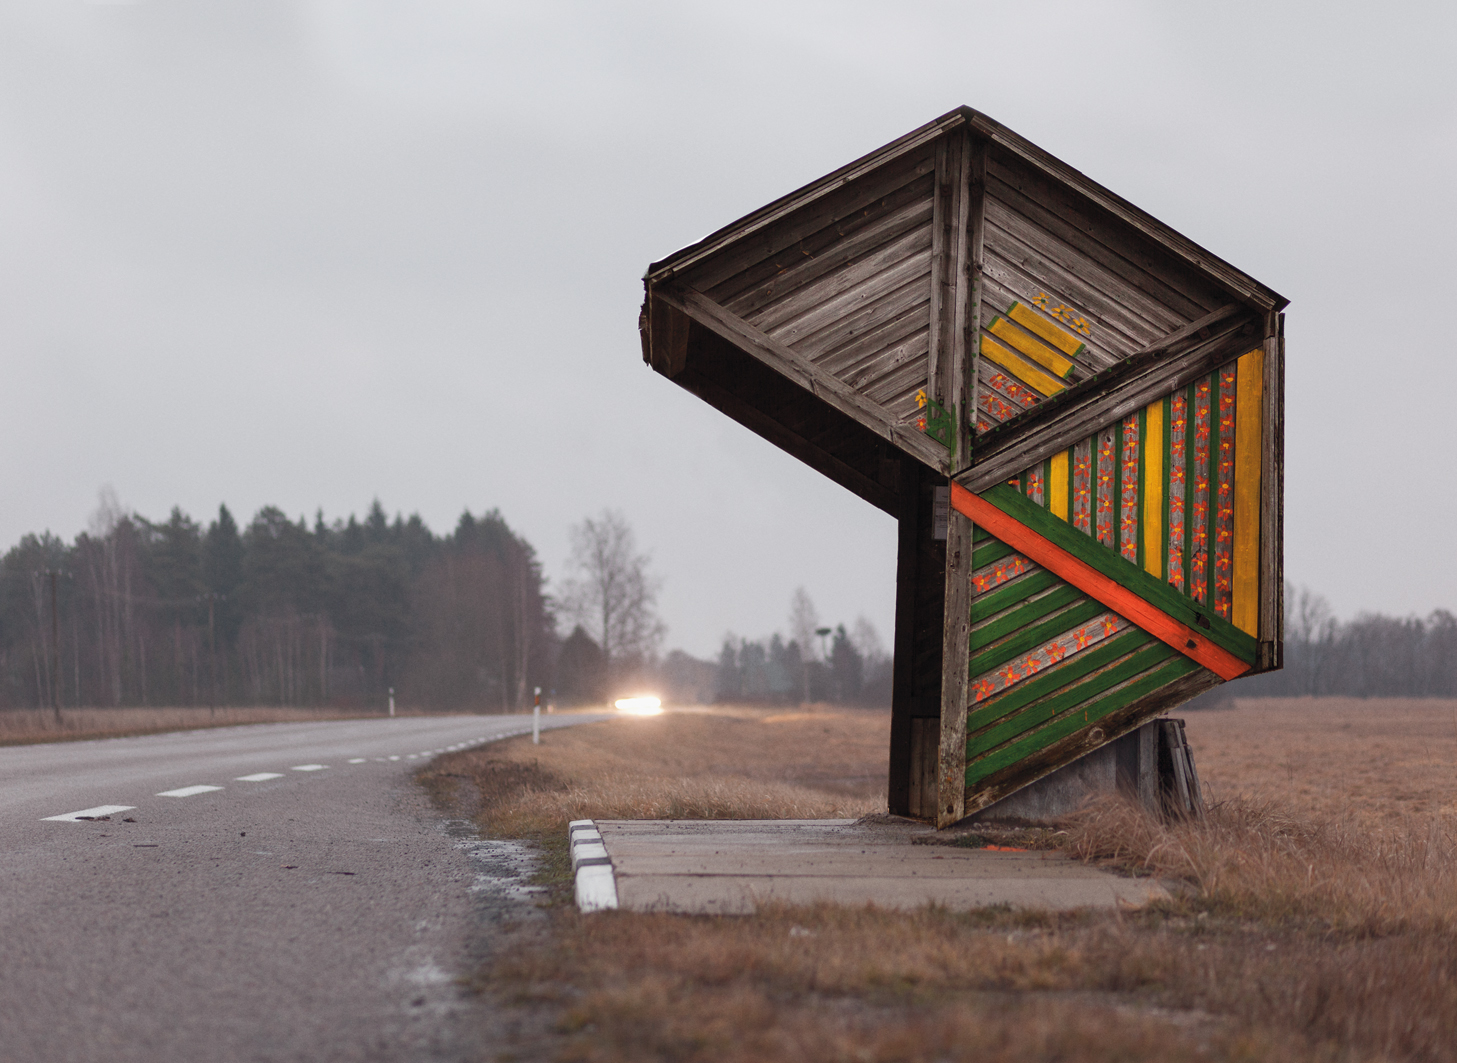 A bus stop on a road in Kootsi, Estonia.